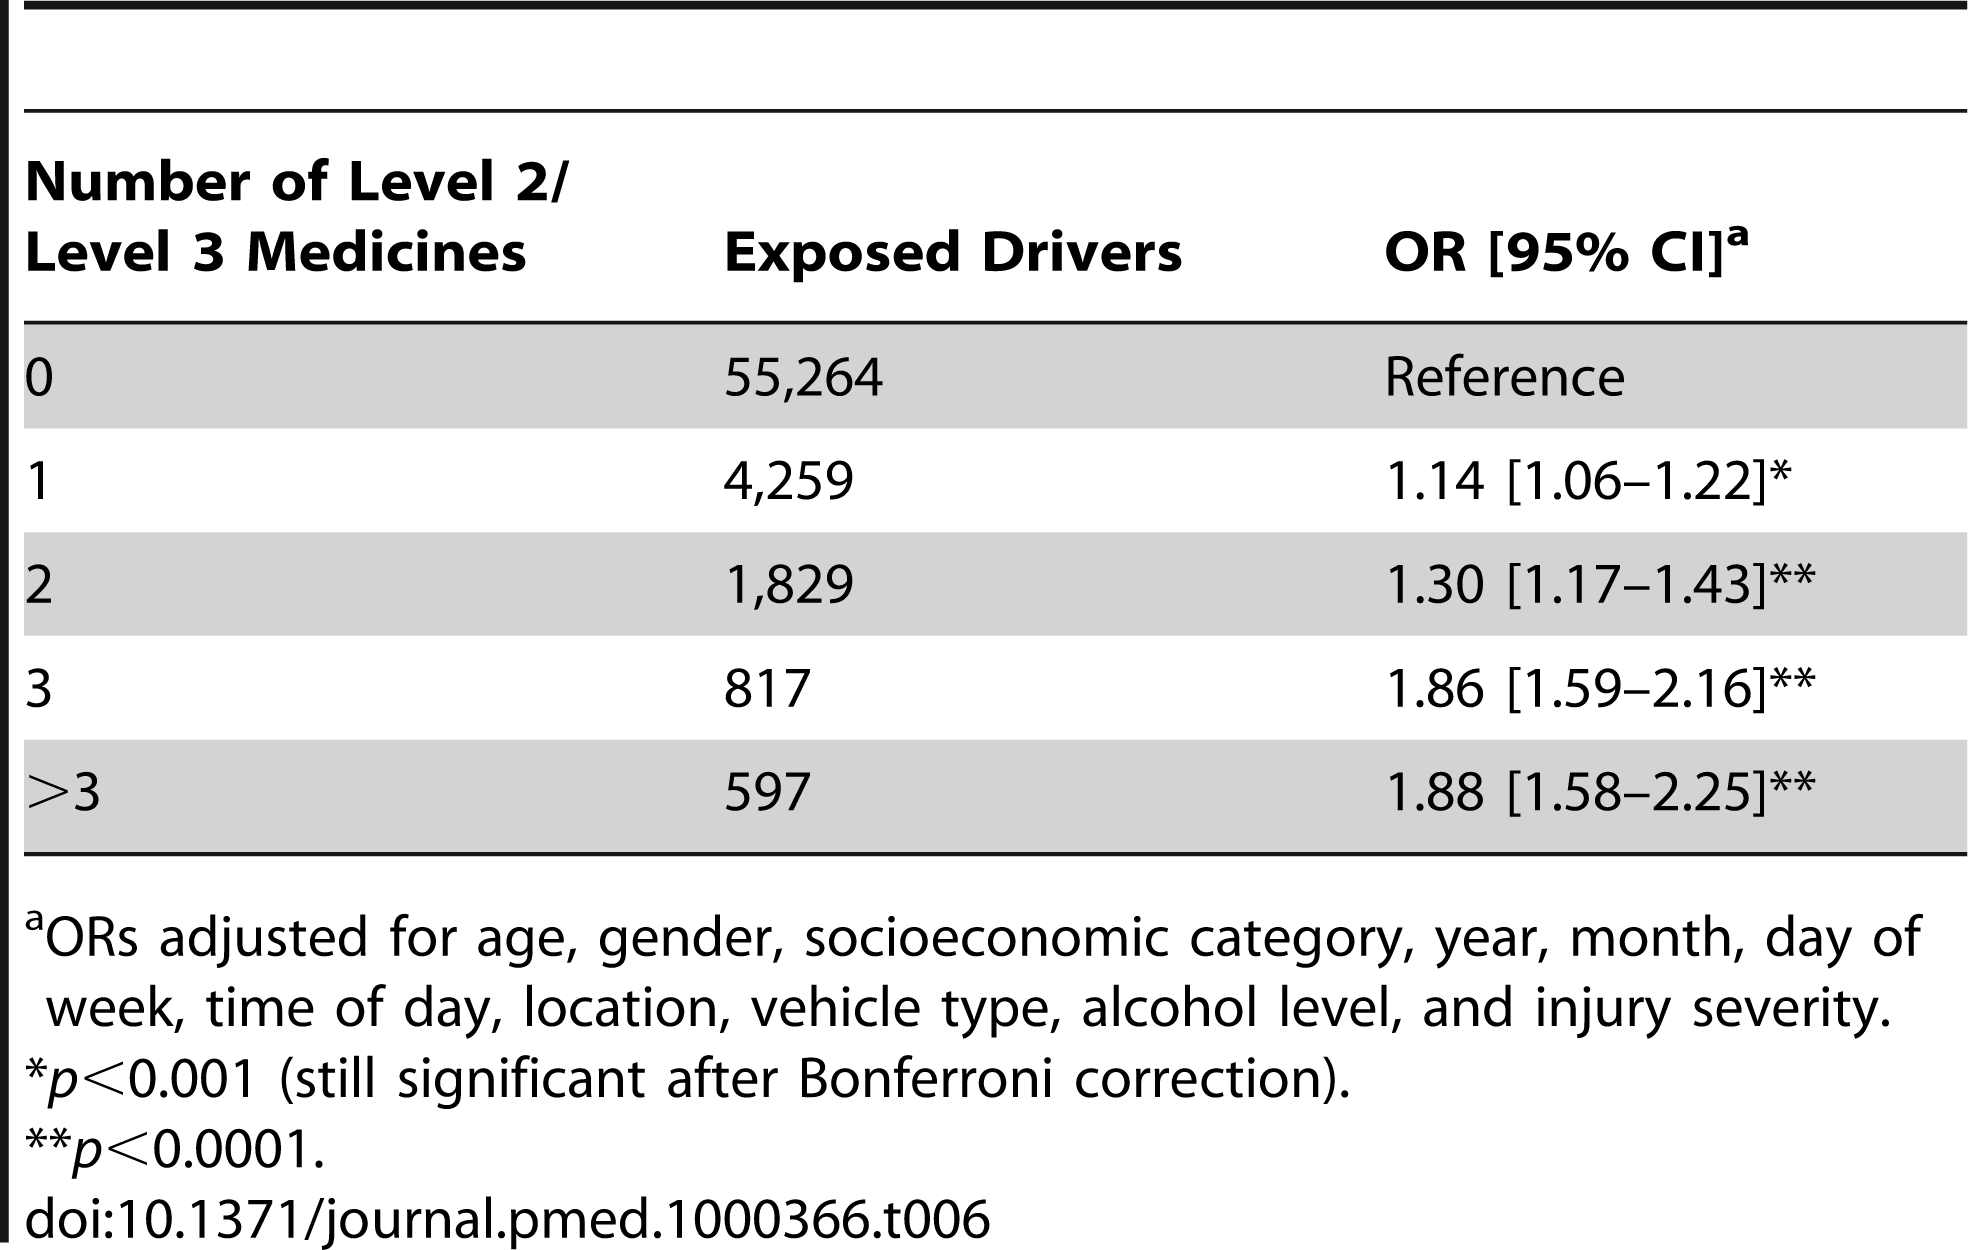 ORs for responsible road traffic crashes by number of level 2 and/or level 3 medicines used.